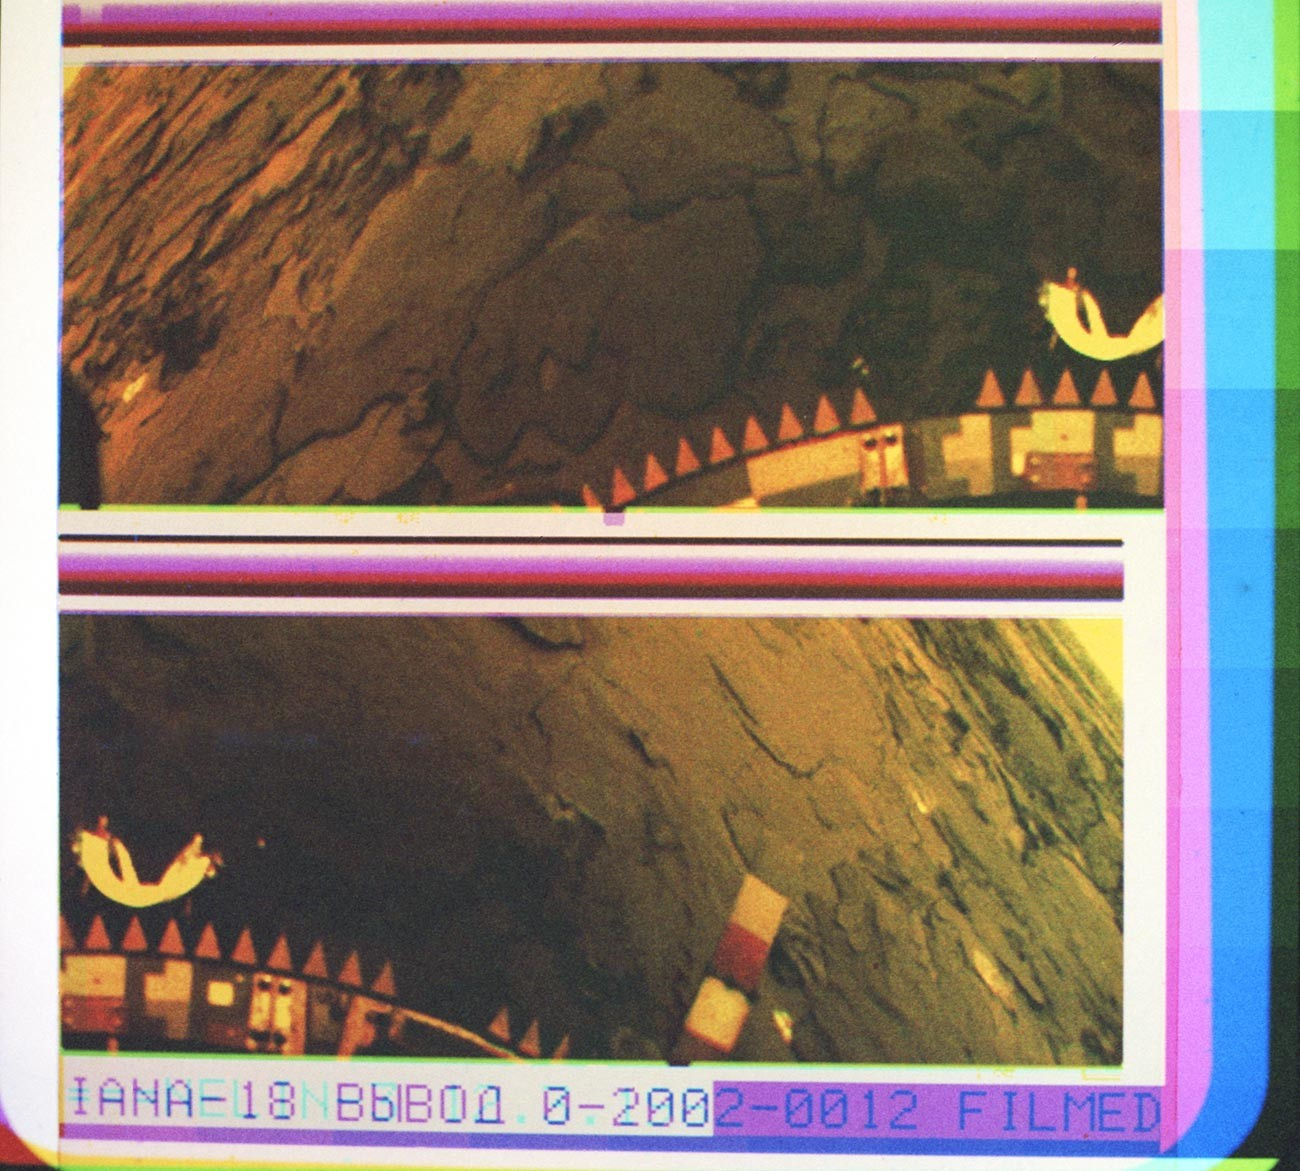 Color panoramic image of the surface of Venus.